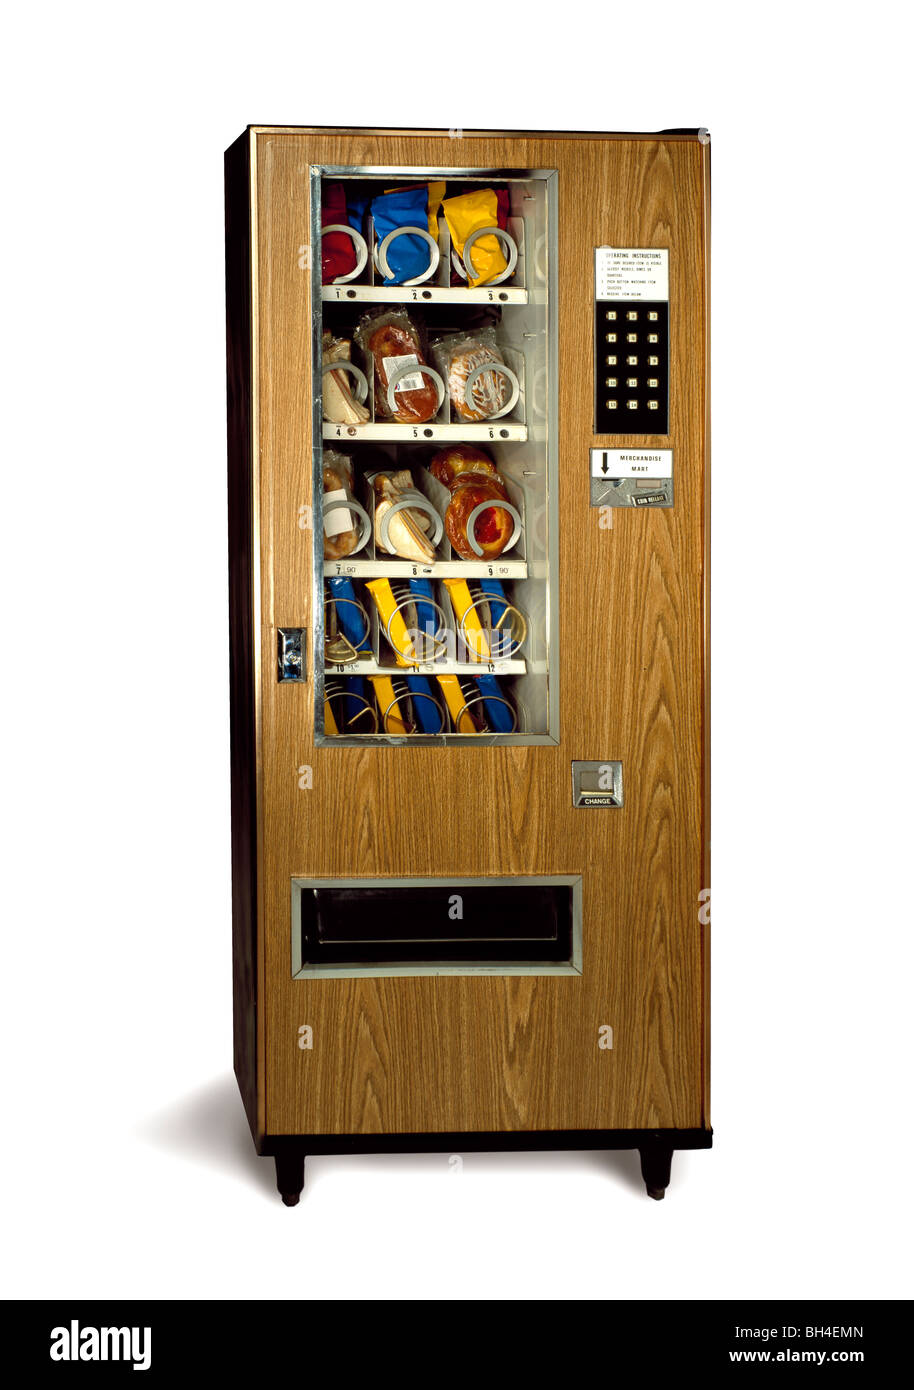 Old vending machine on a white background - Stock Image